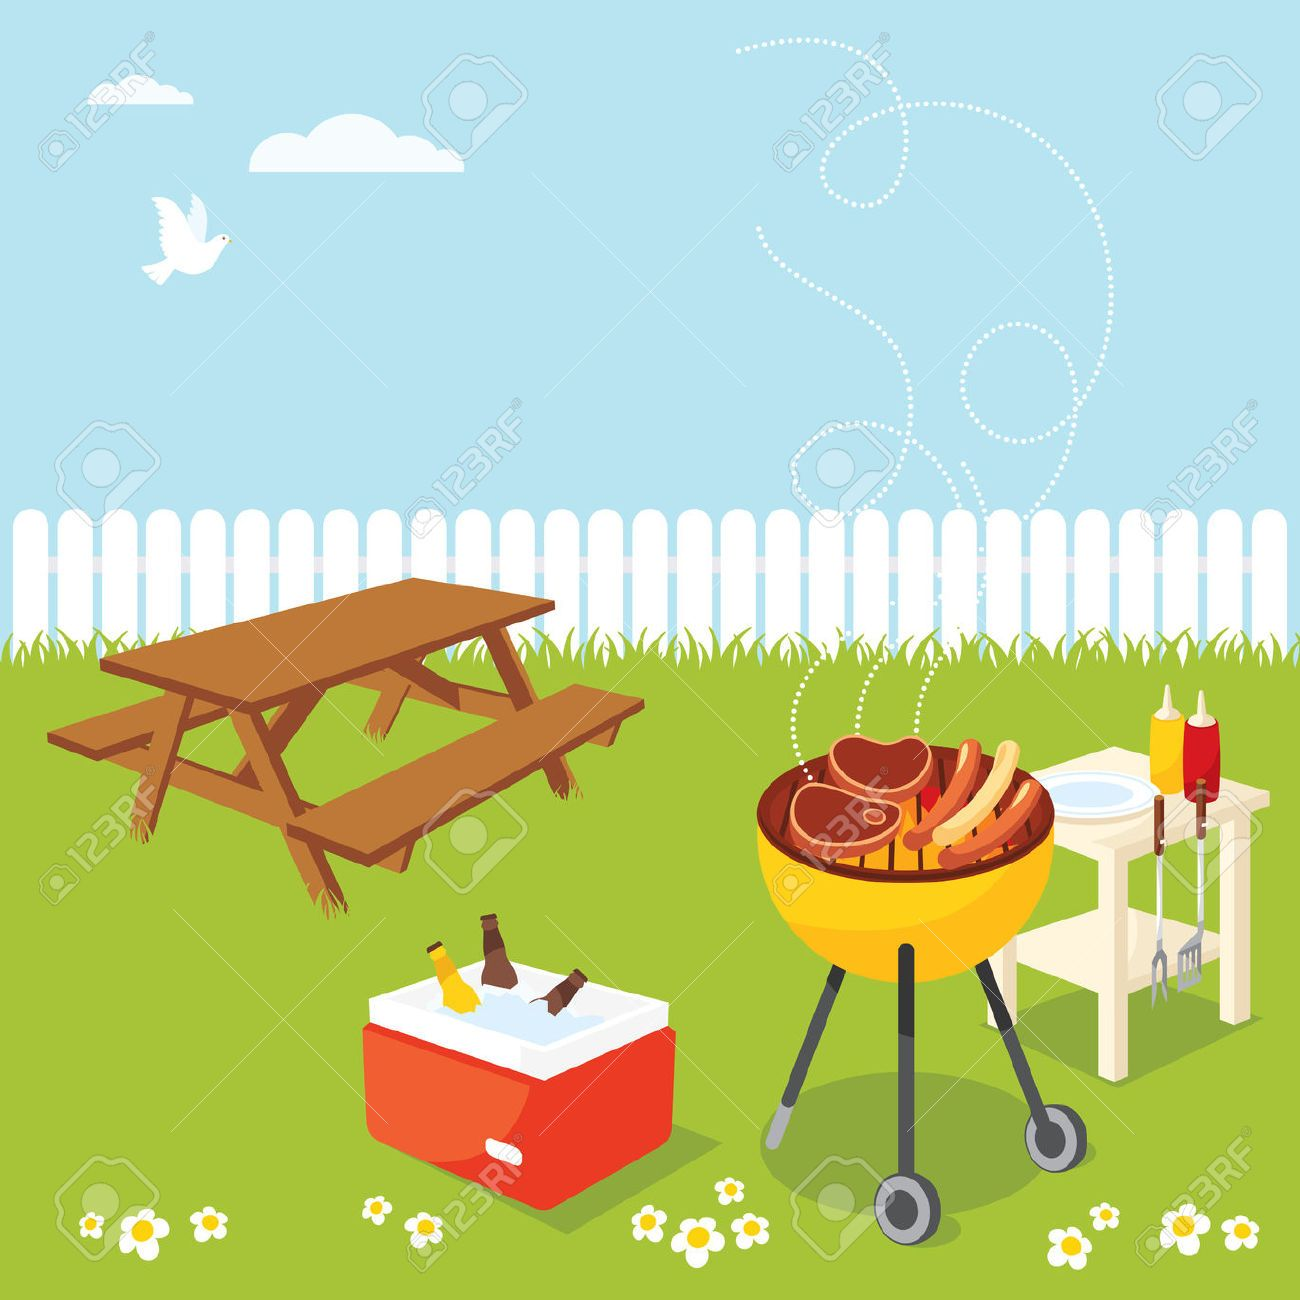 Backyard bbq party clipart 7 » Clipart Portal png black and white library